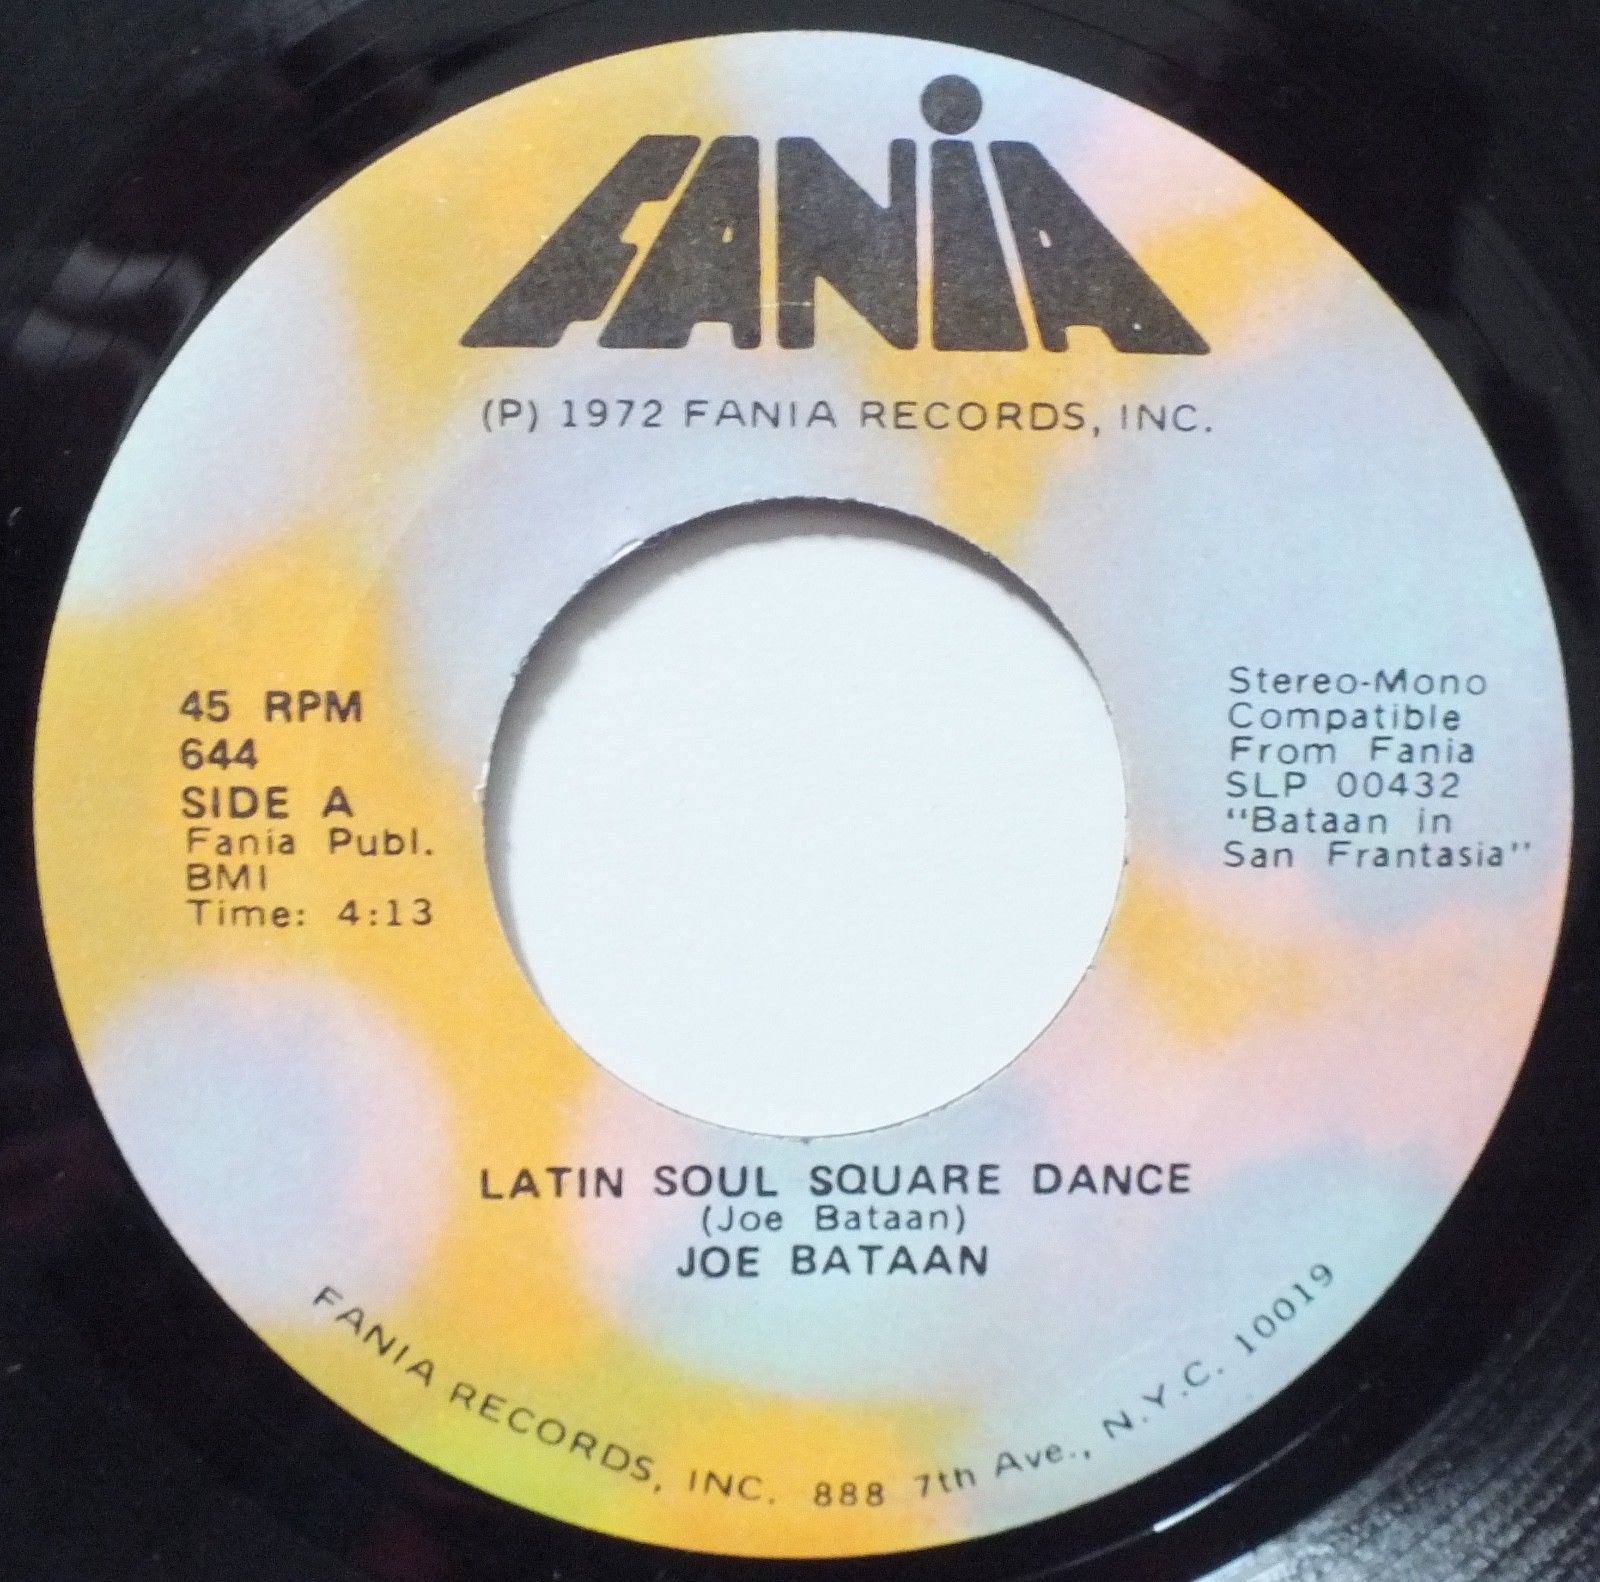 JOE BATAAN LATIN SOUL SQUARE DANCE / CALL ME 45 HEAR RARE FUNK NORTHERN